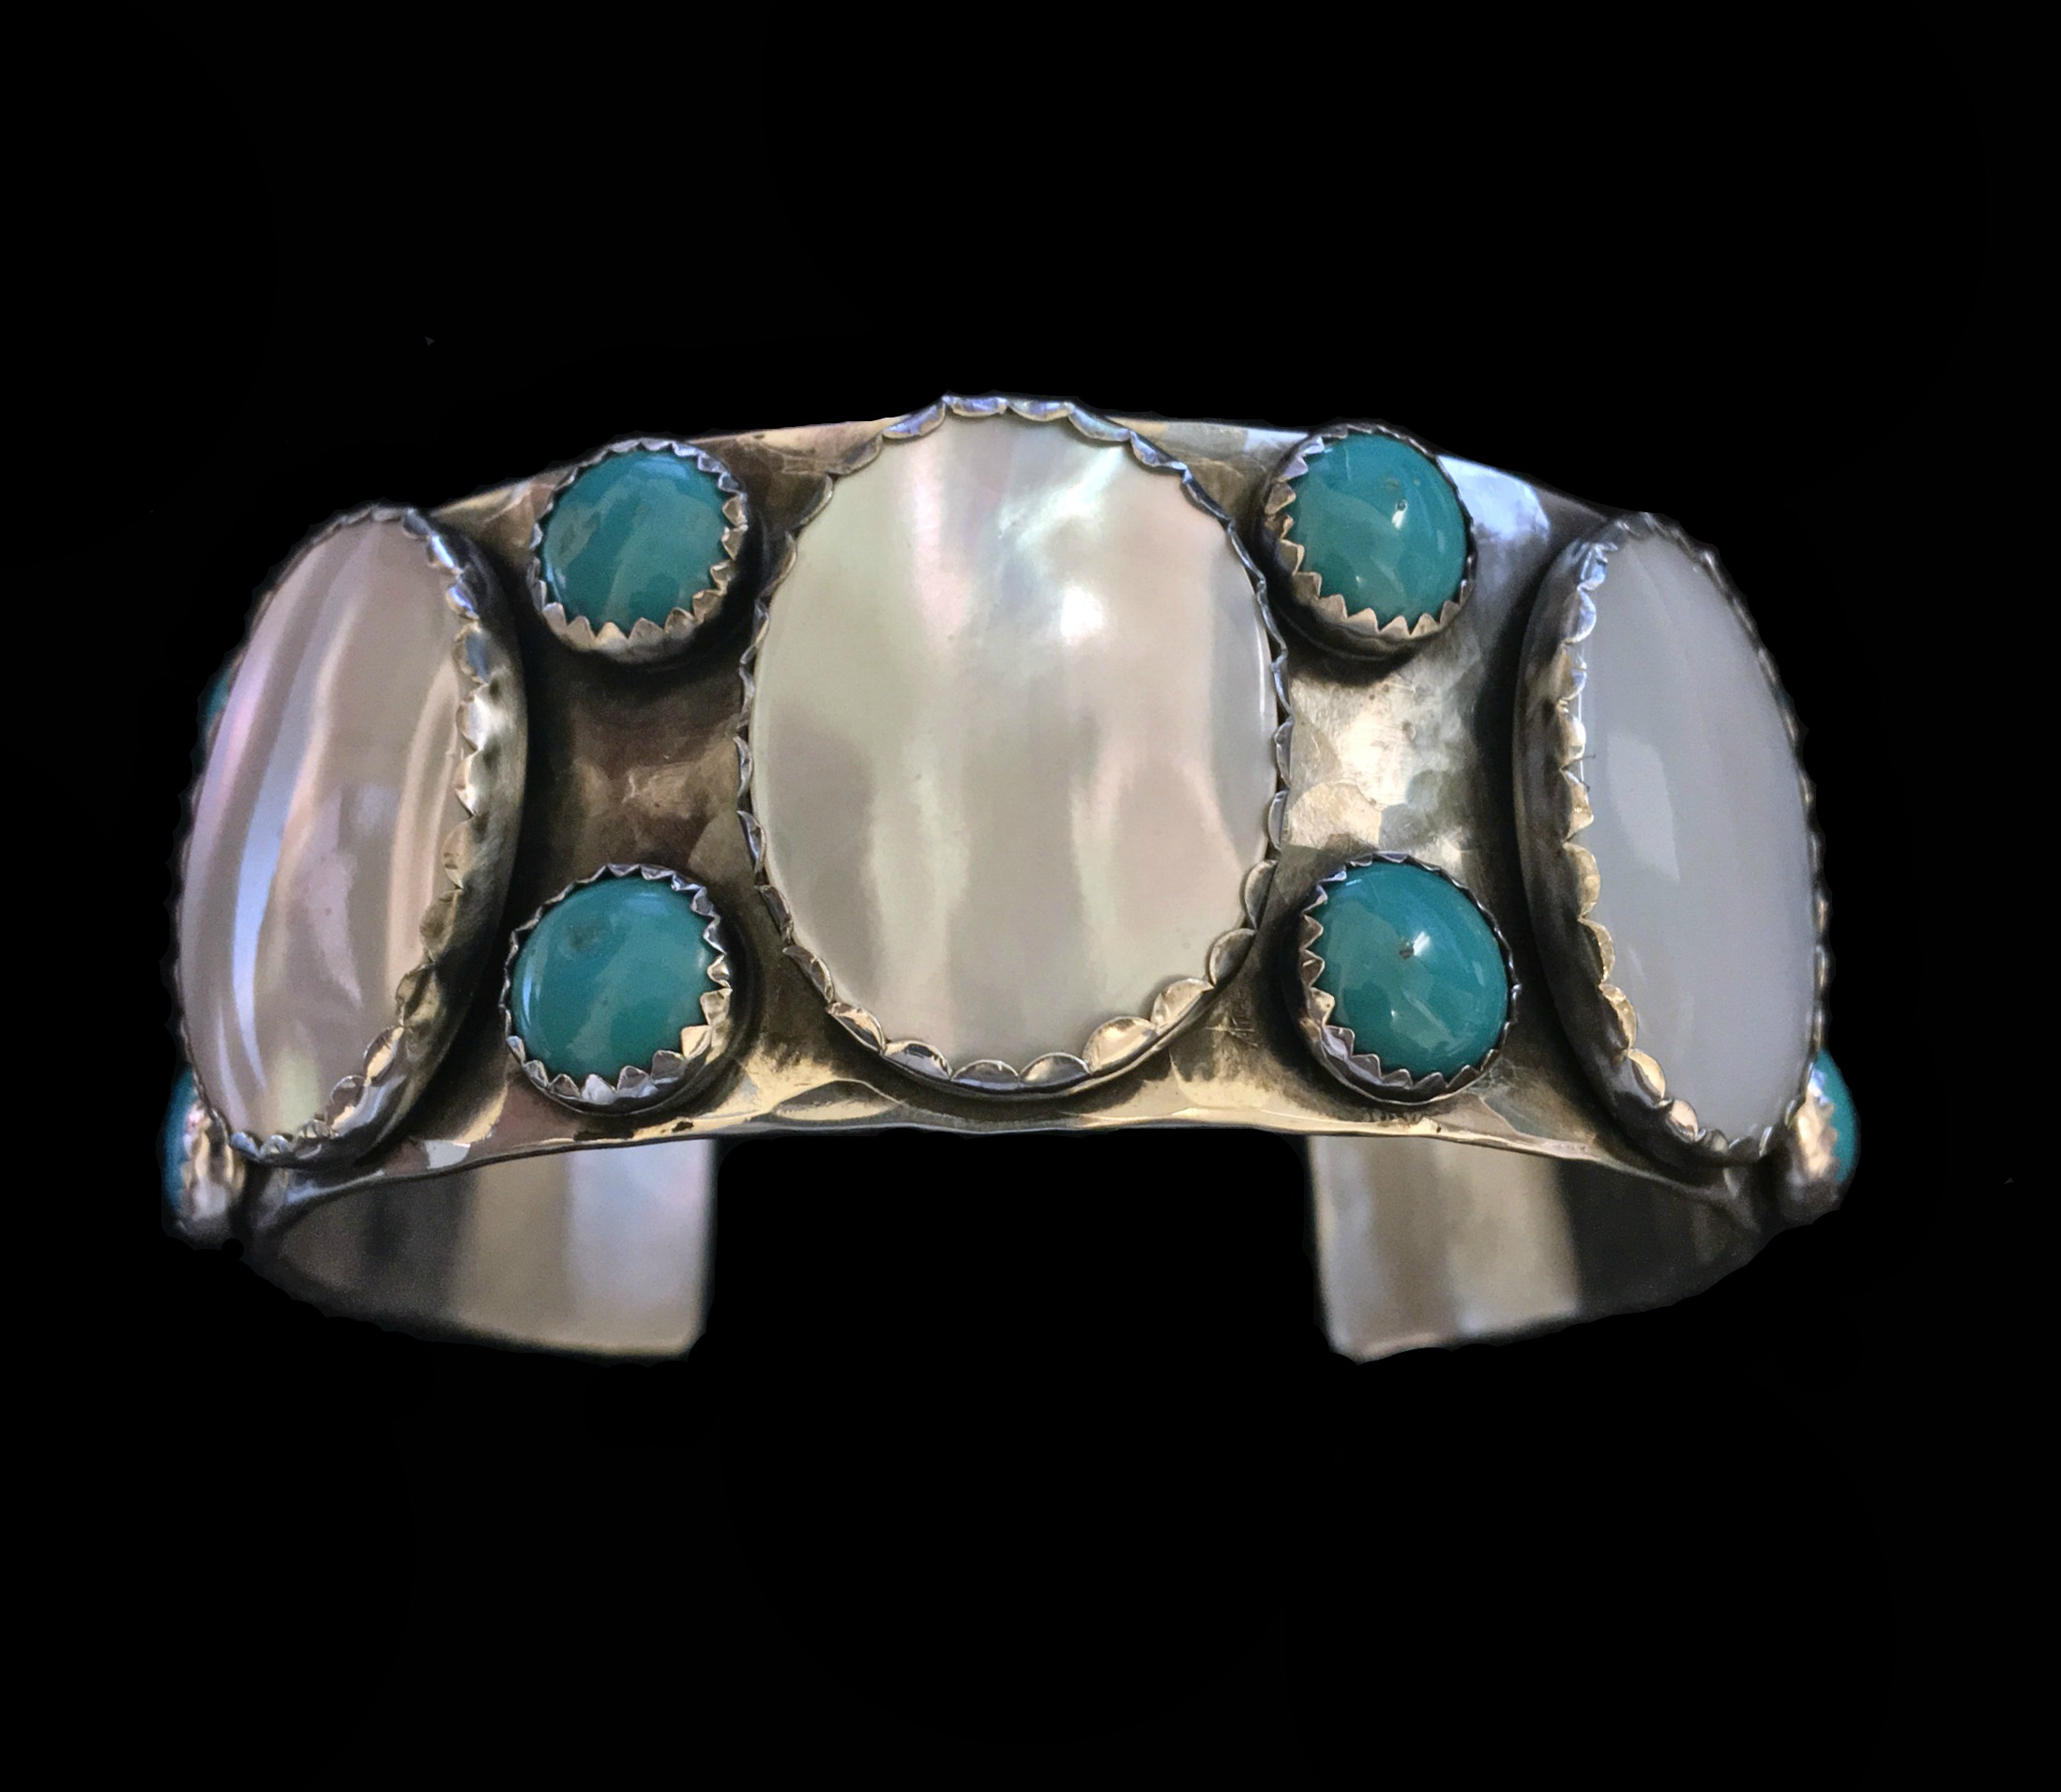 Mother of Pear and Turquoise Cuff